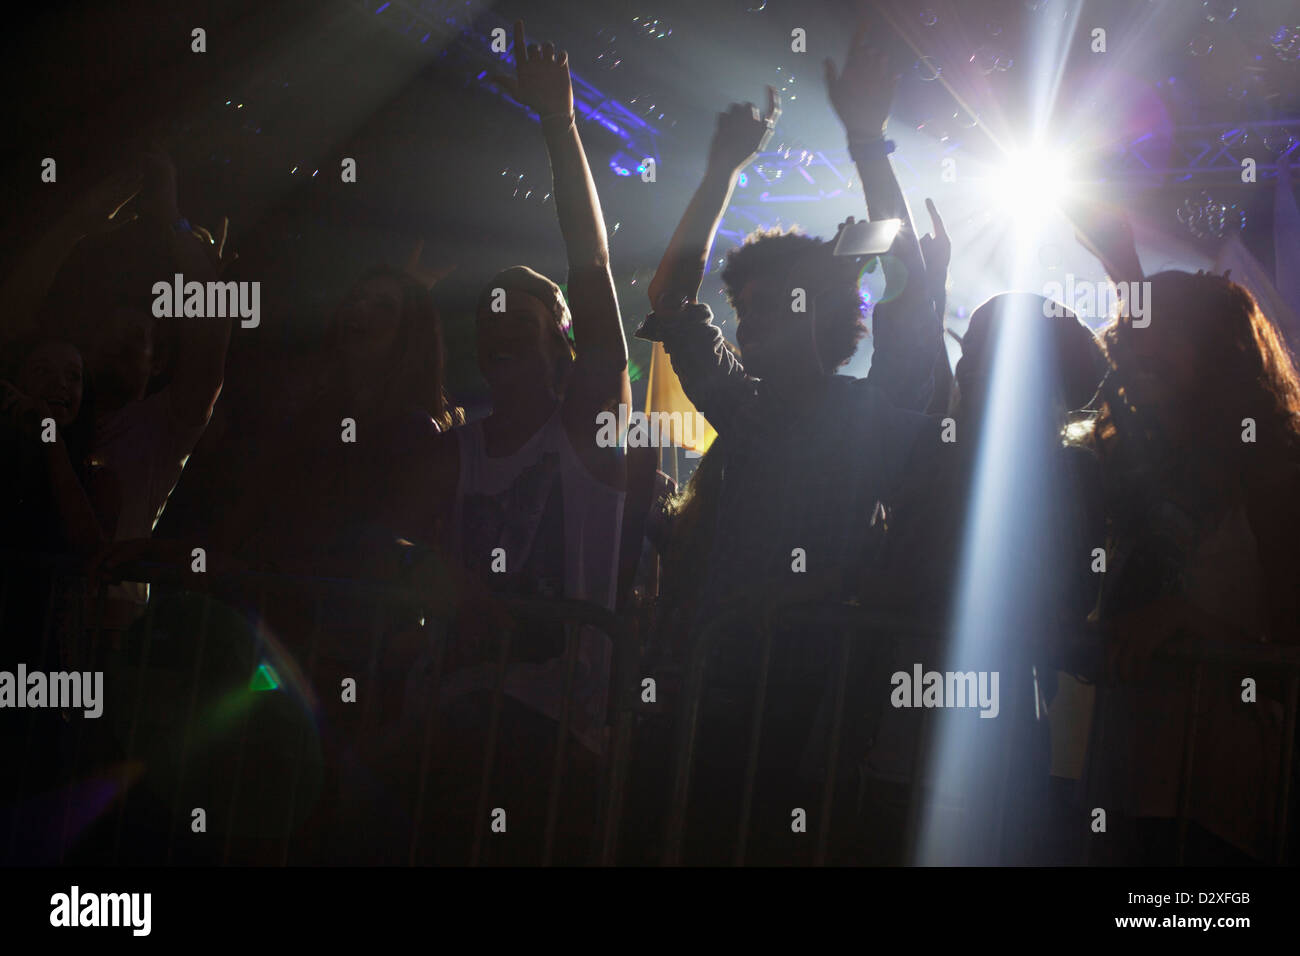 Spotlight above silhouette of crowd cheering at concert - Stock Image